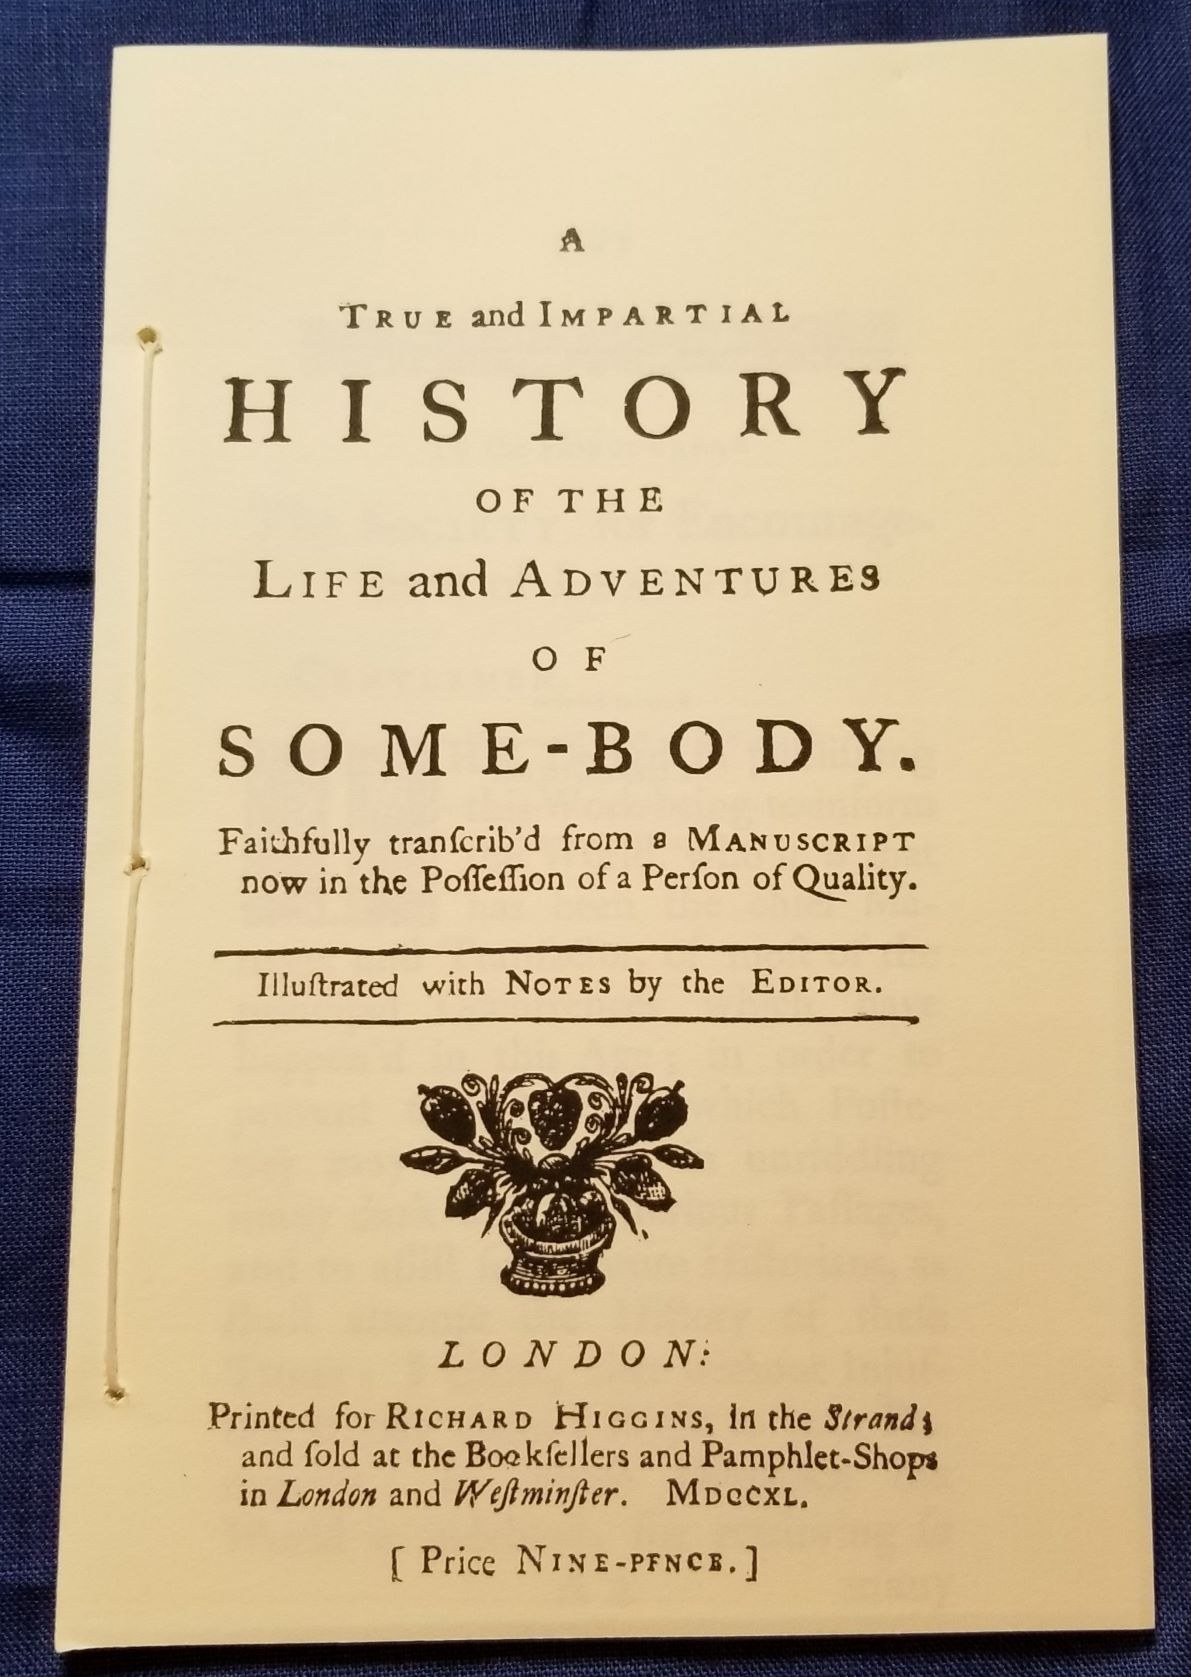 History of the Life and Adventures of Some-Body